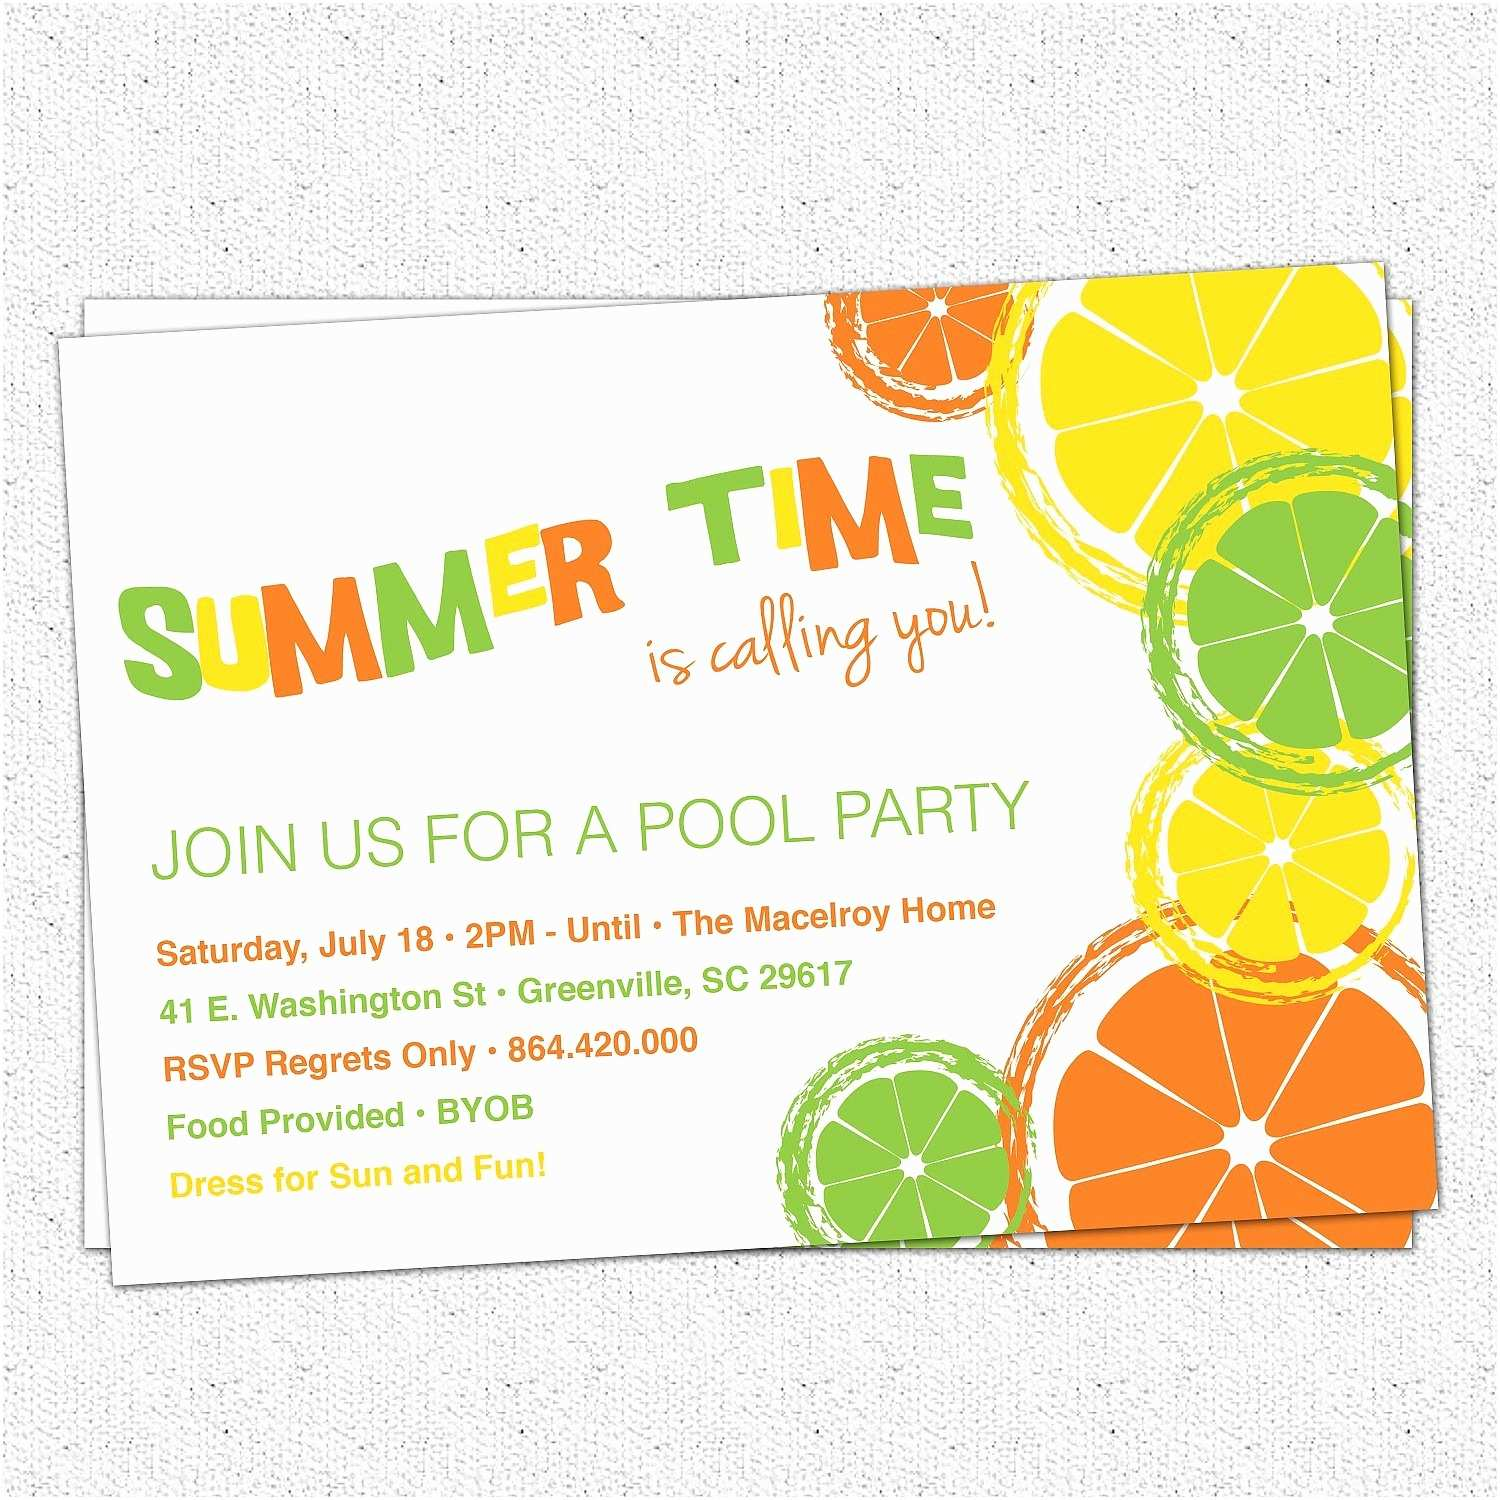 Pool Party Invitation Wording Pool Party and Bbq Invitation Wording Archives